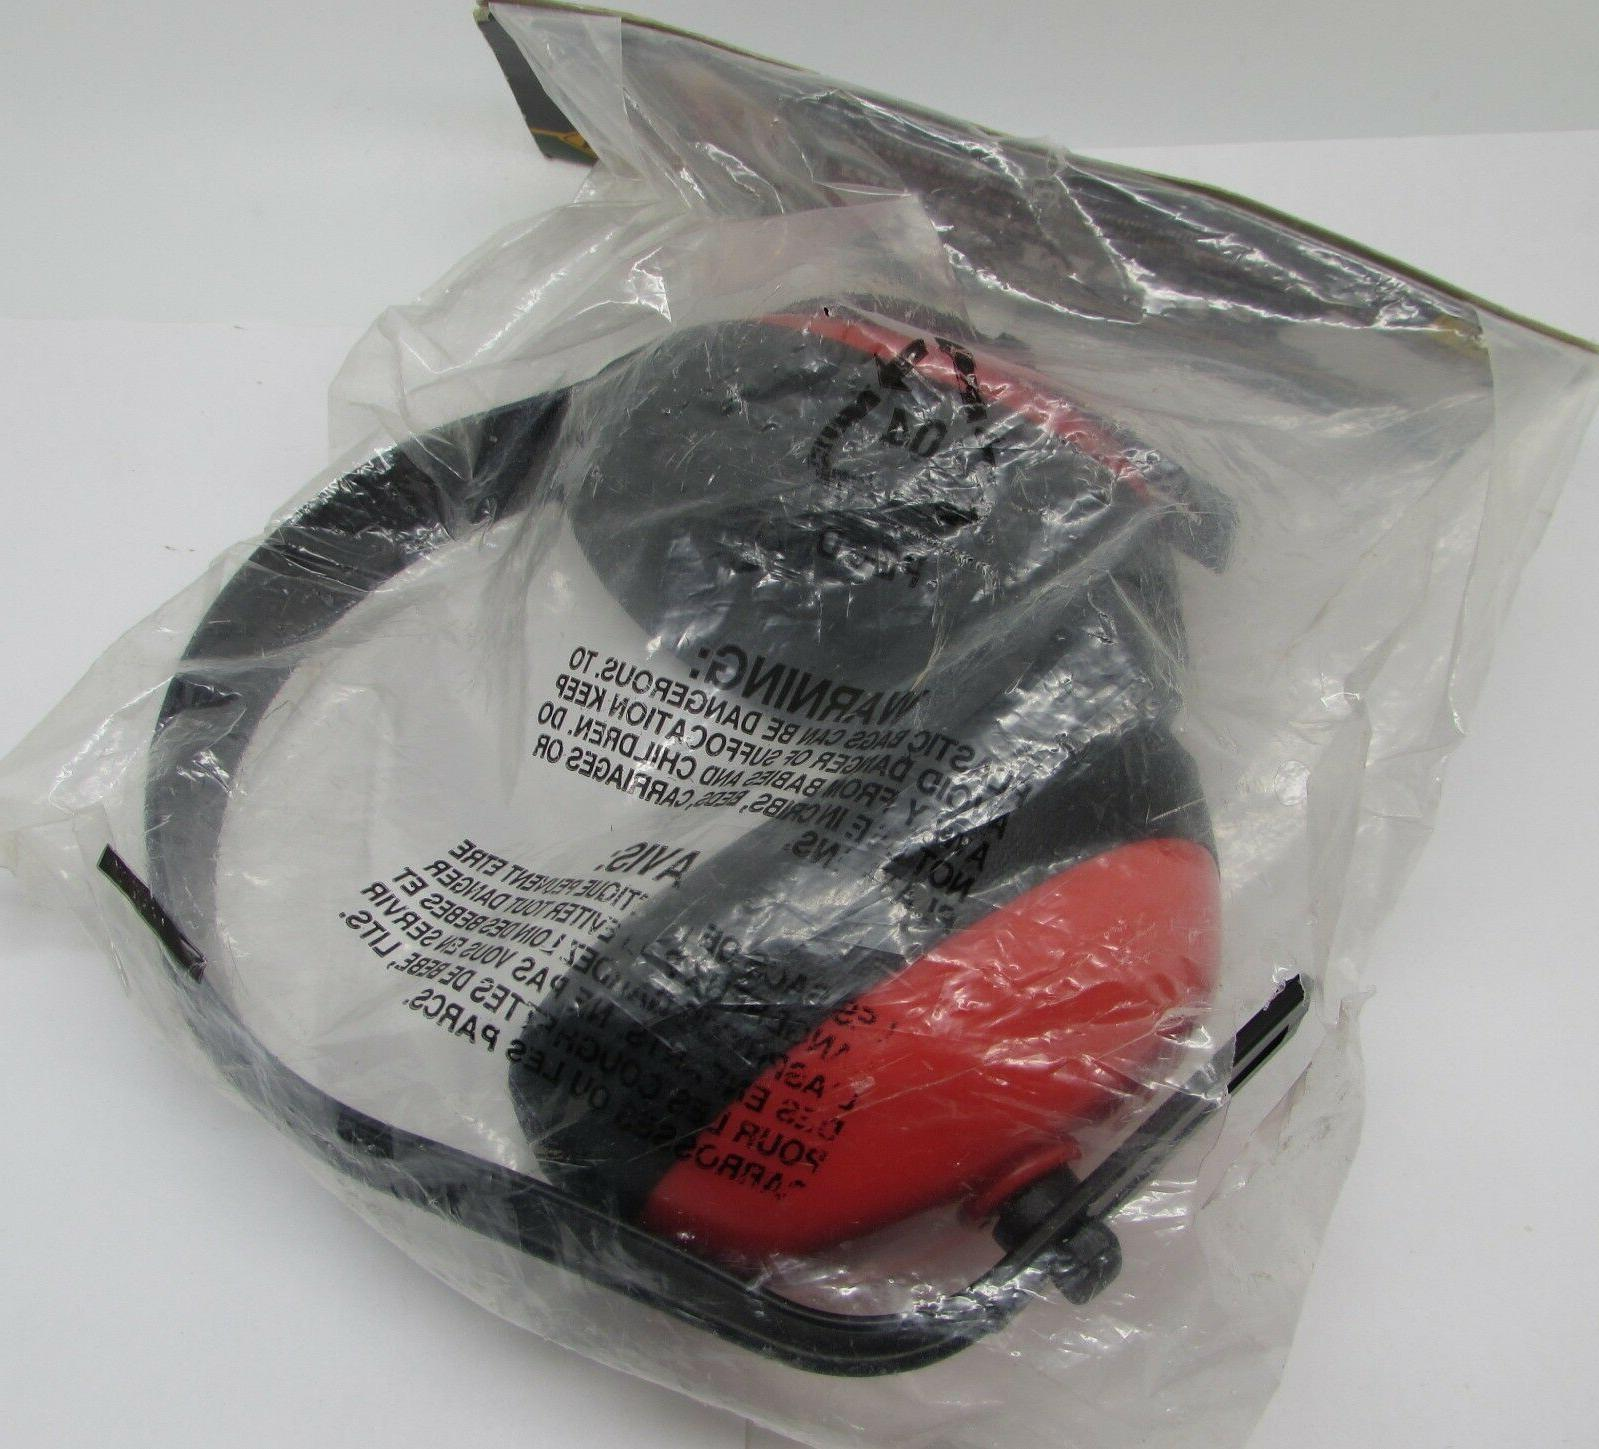 WESTERN 43768 INDUSTRIAL EAR MUFFS PROTECTION